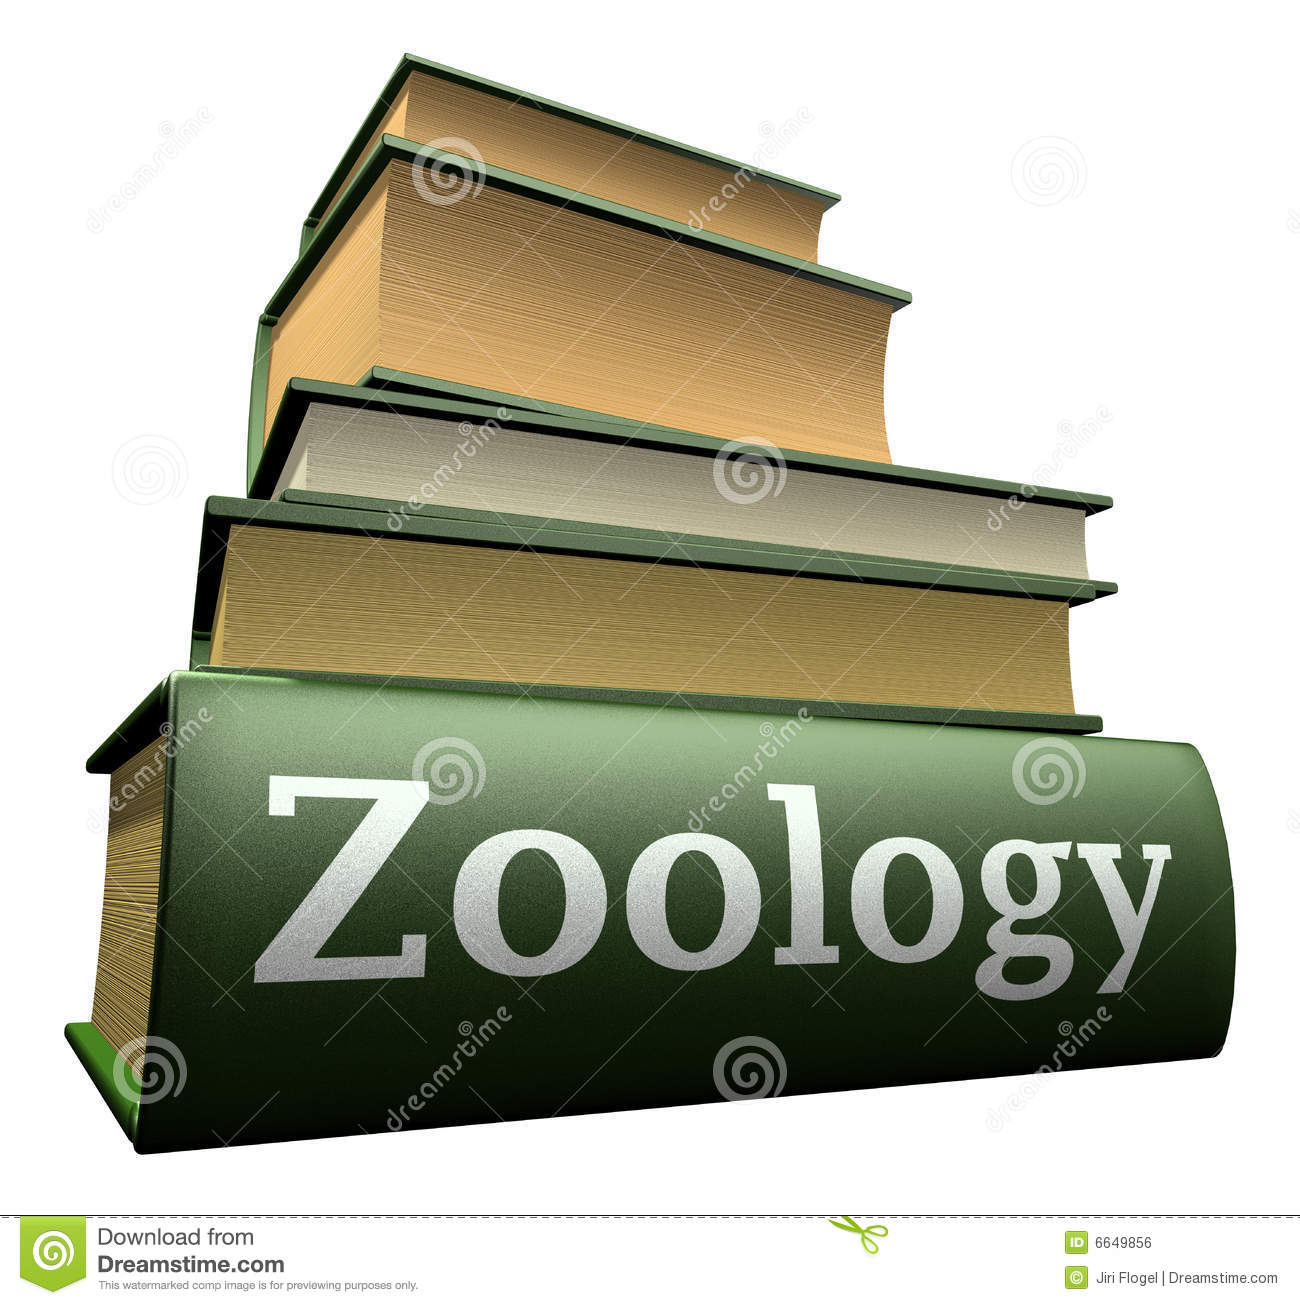 education-books-zoology-6649856.jpg